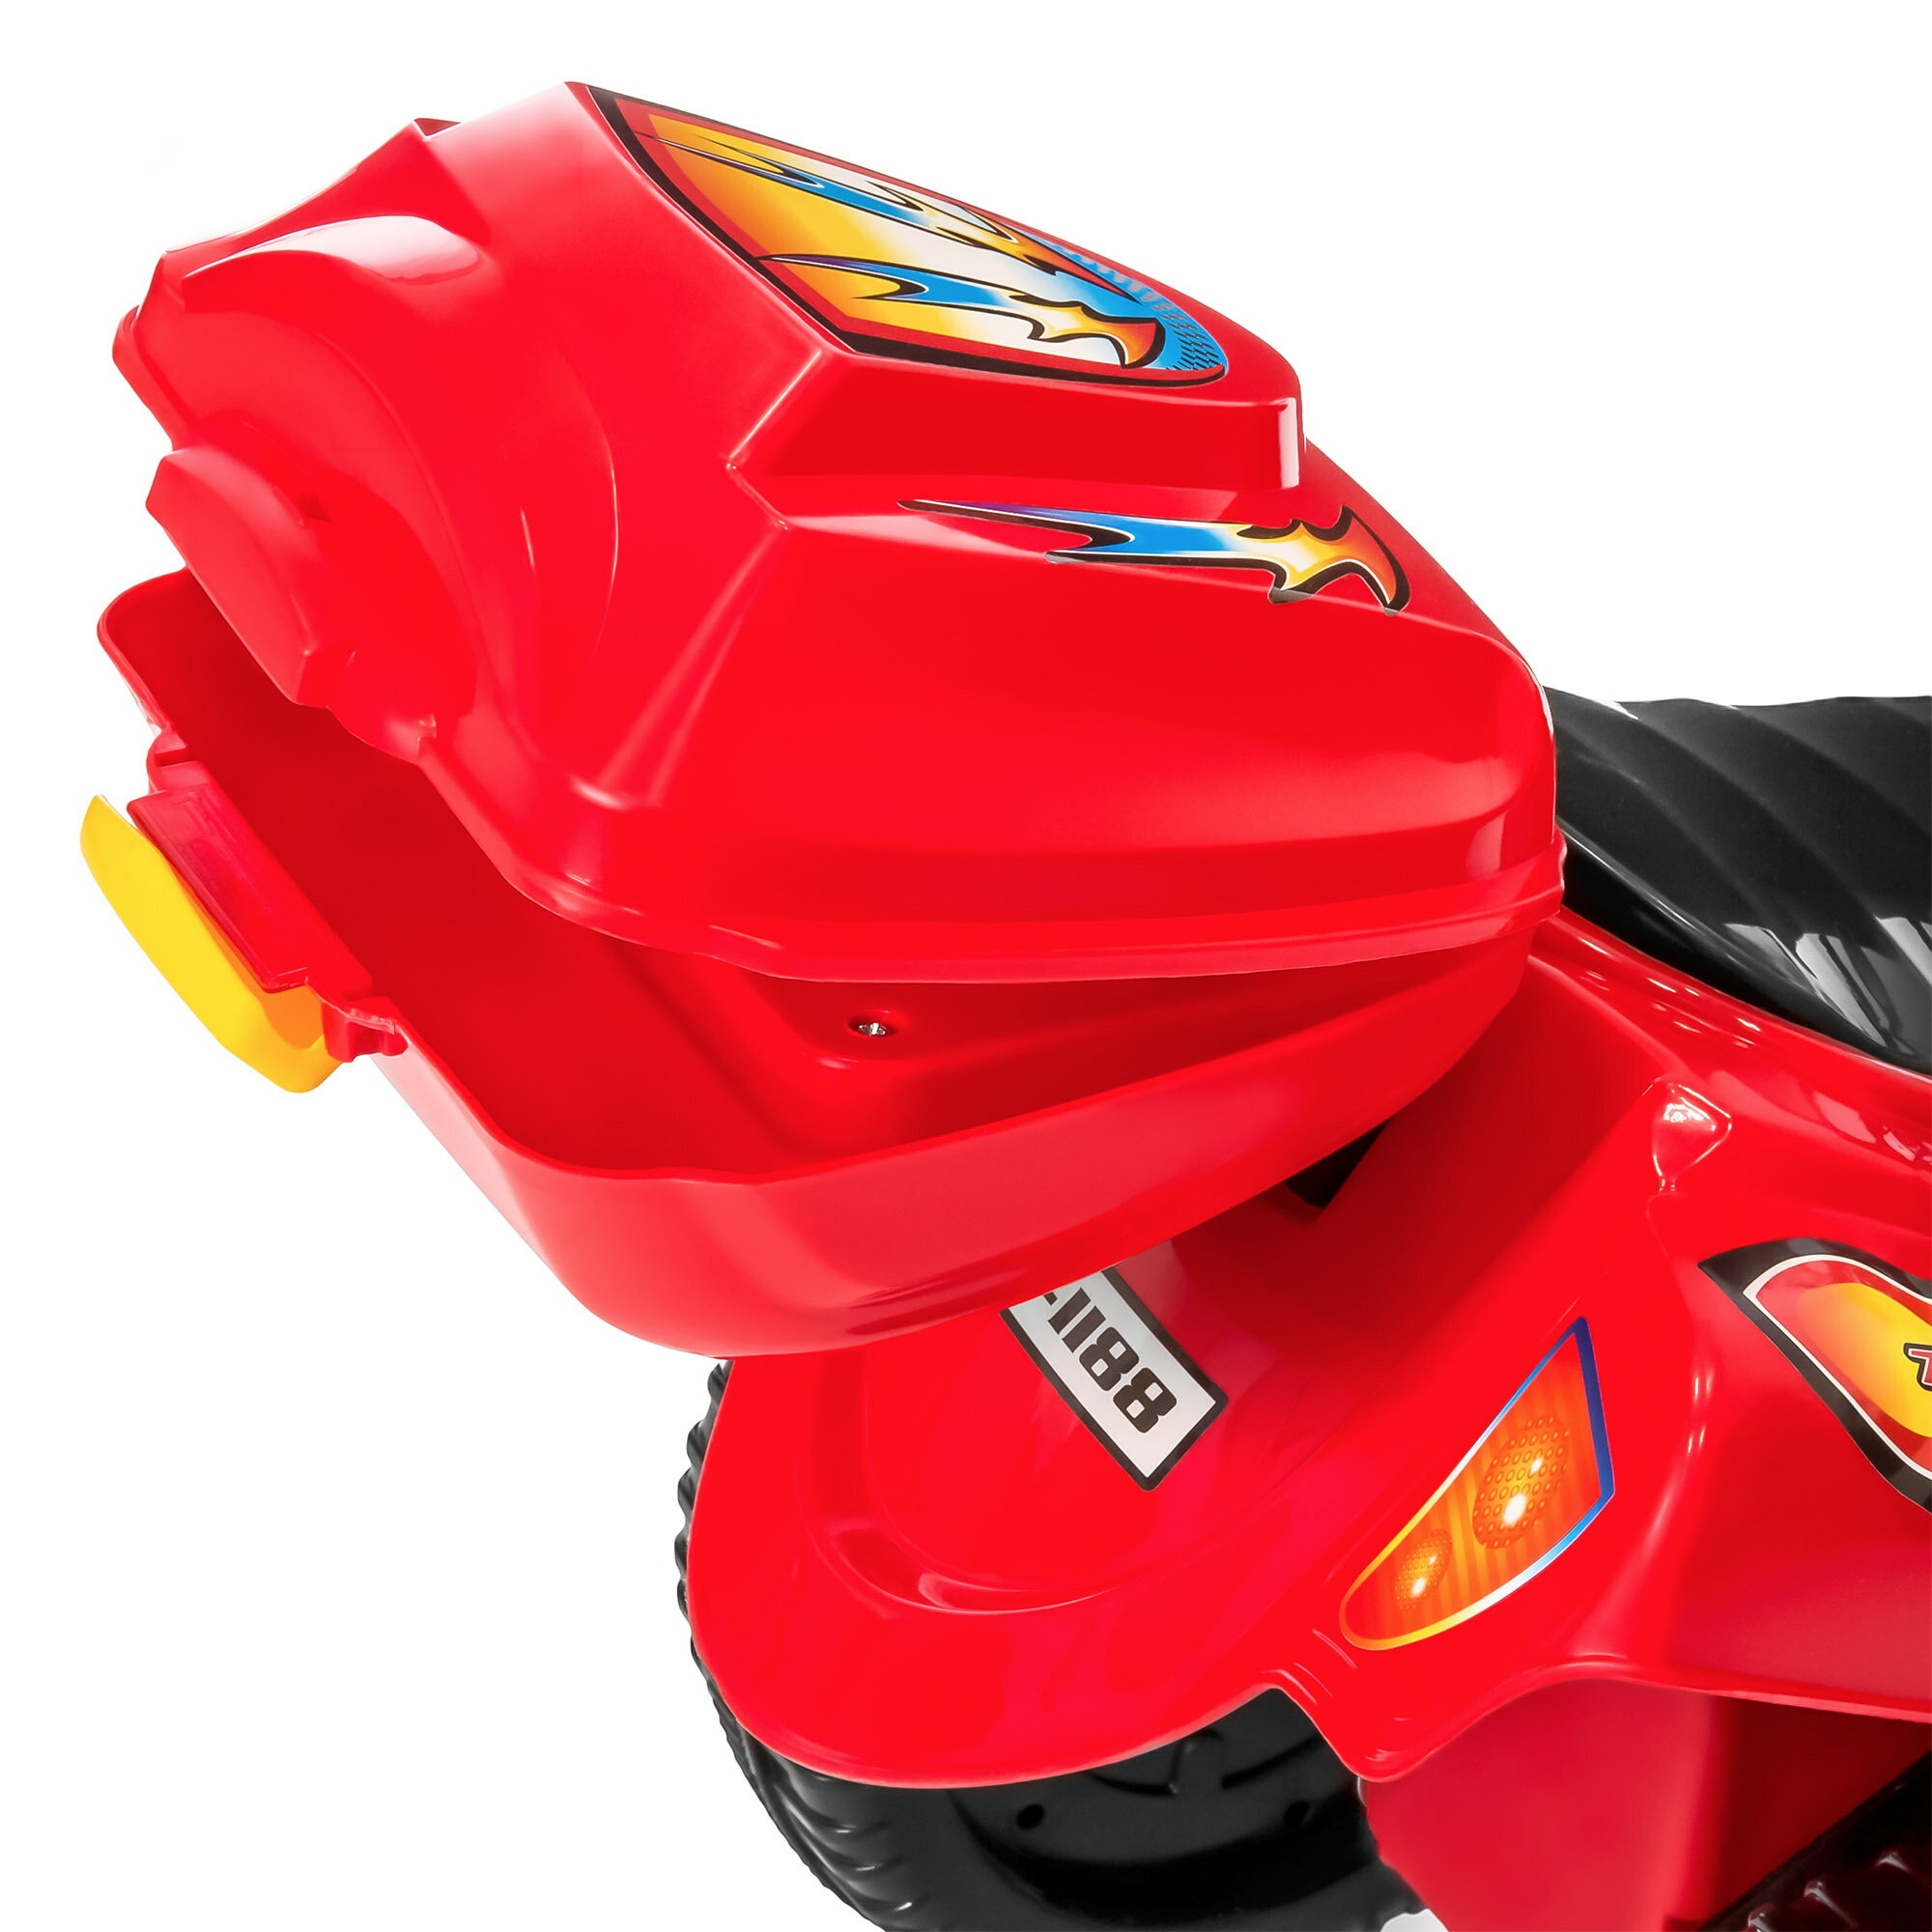 Best Choice Products 6V Kids Battery Powered 3-Wheel Motorcycle Ride-On Toy w/ LED Lights, Music, Horn, Storage - Red 3